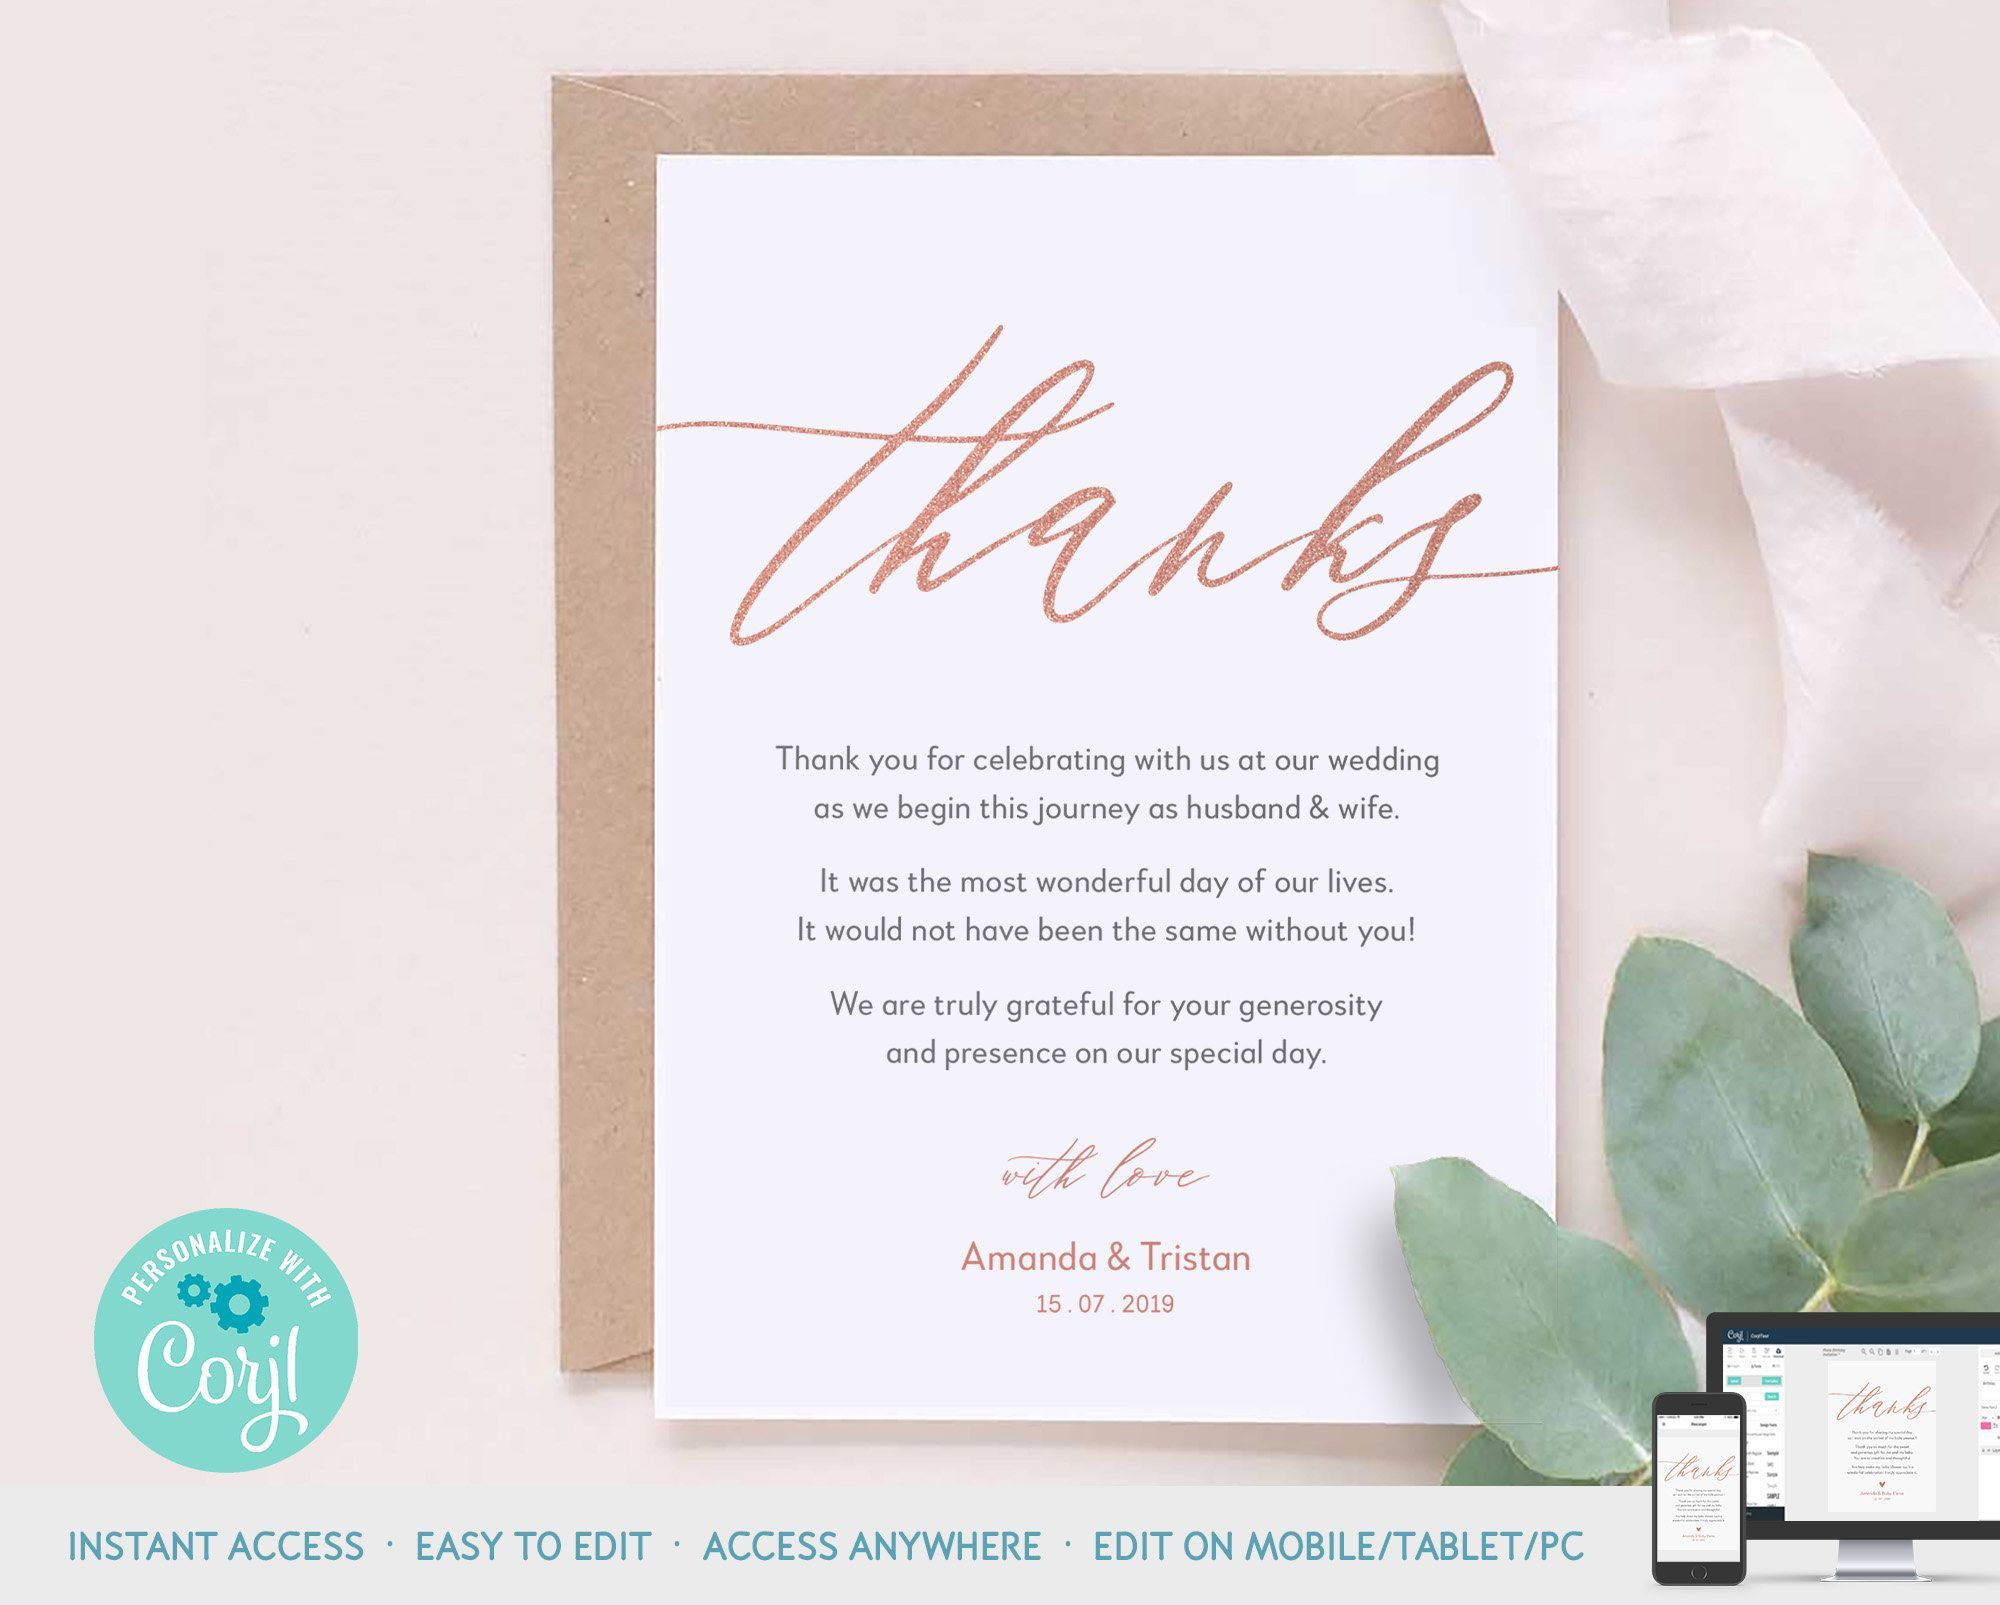 003 Top Wedding Thank You Note Template Design  Bridal Shower Format MoneyFull